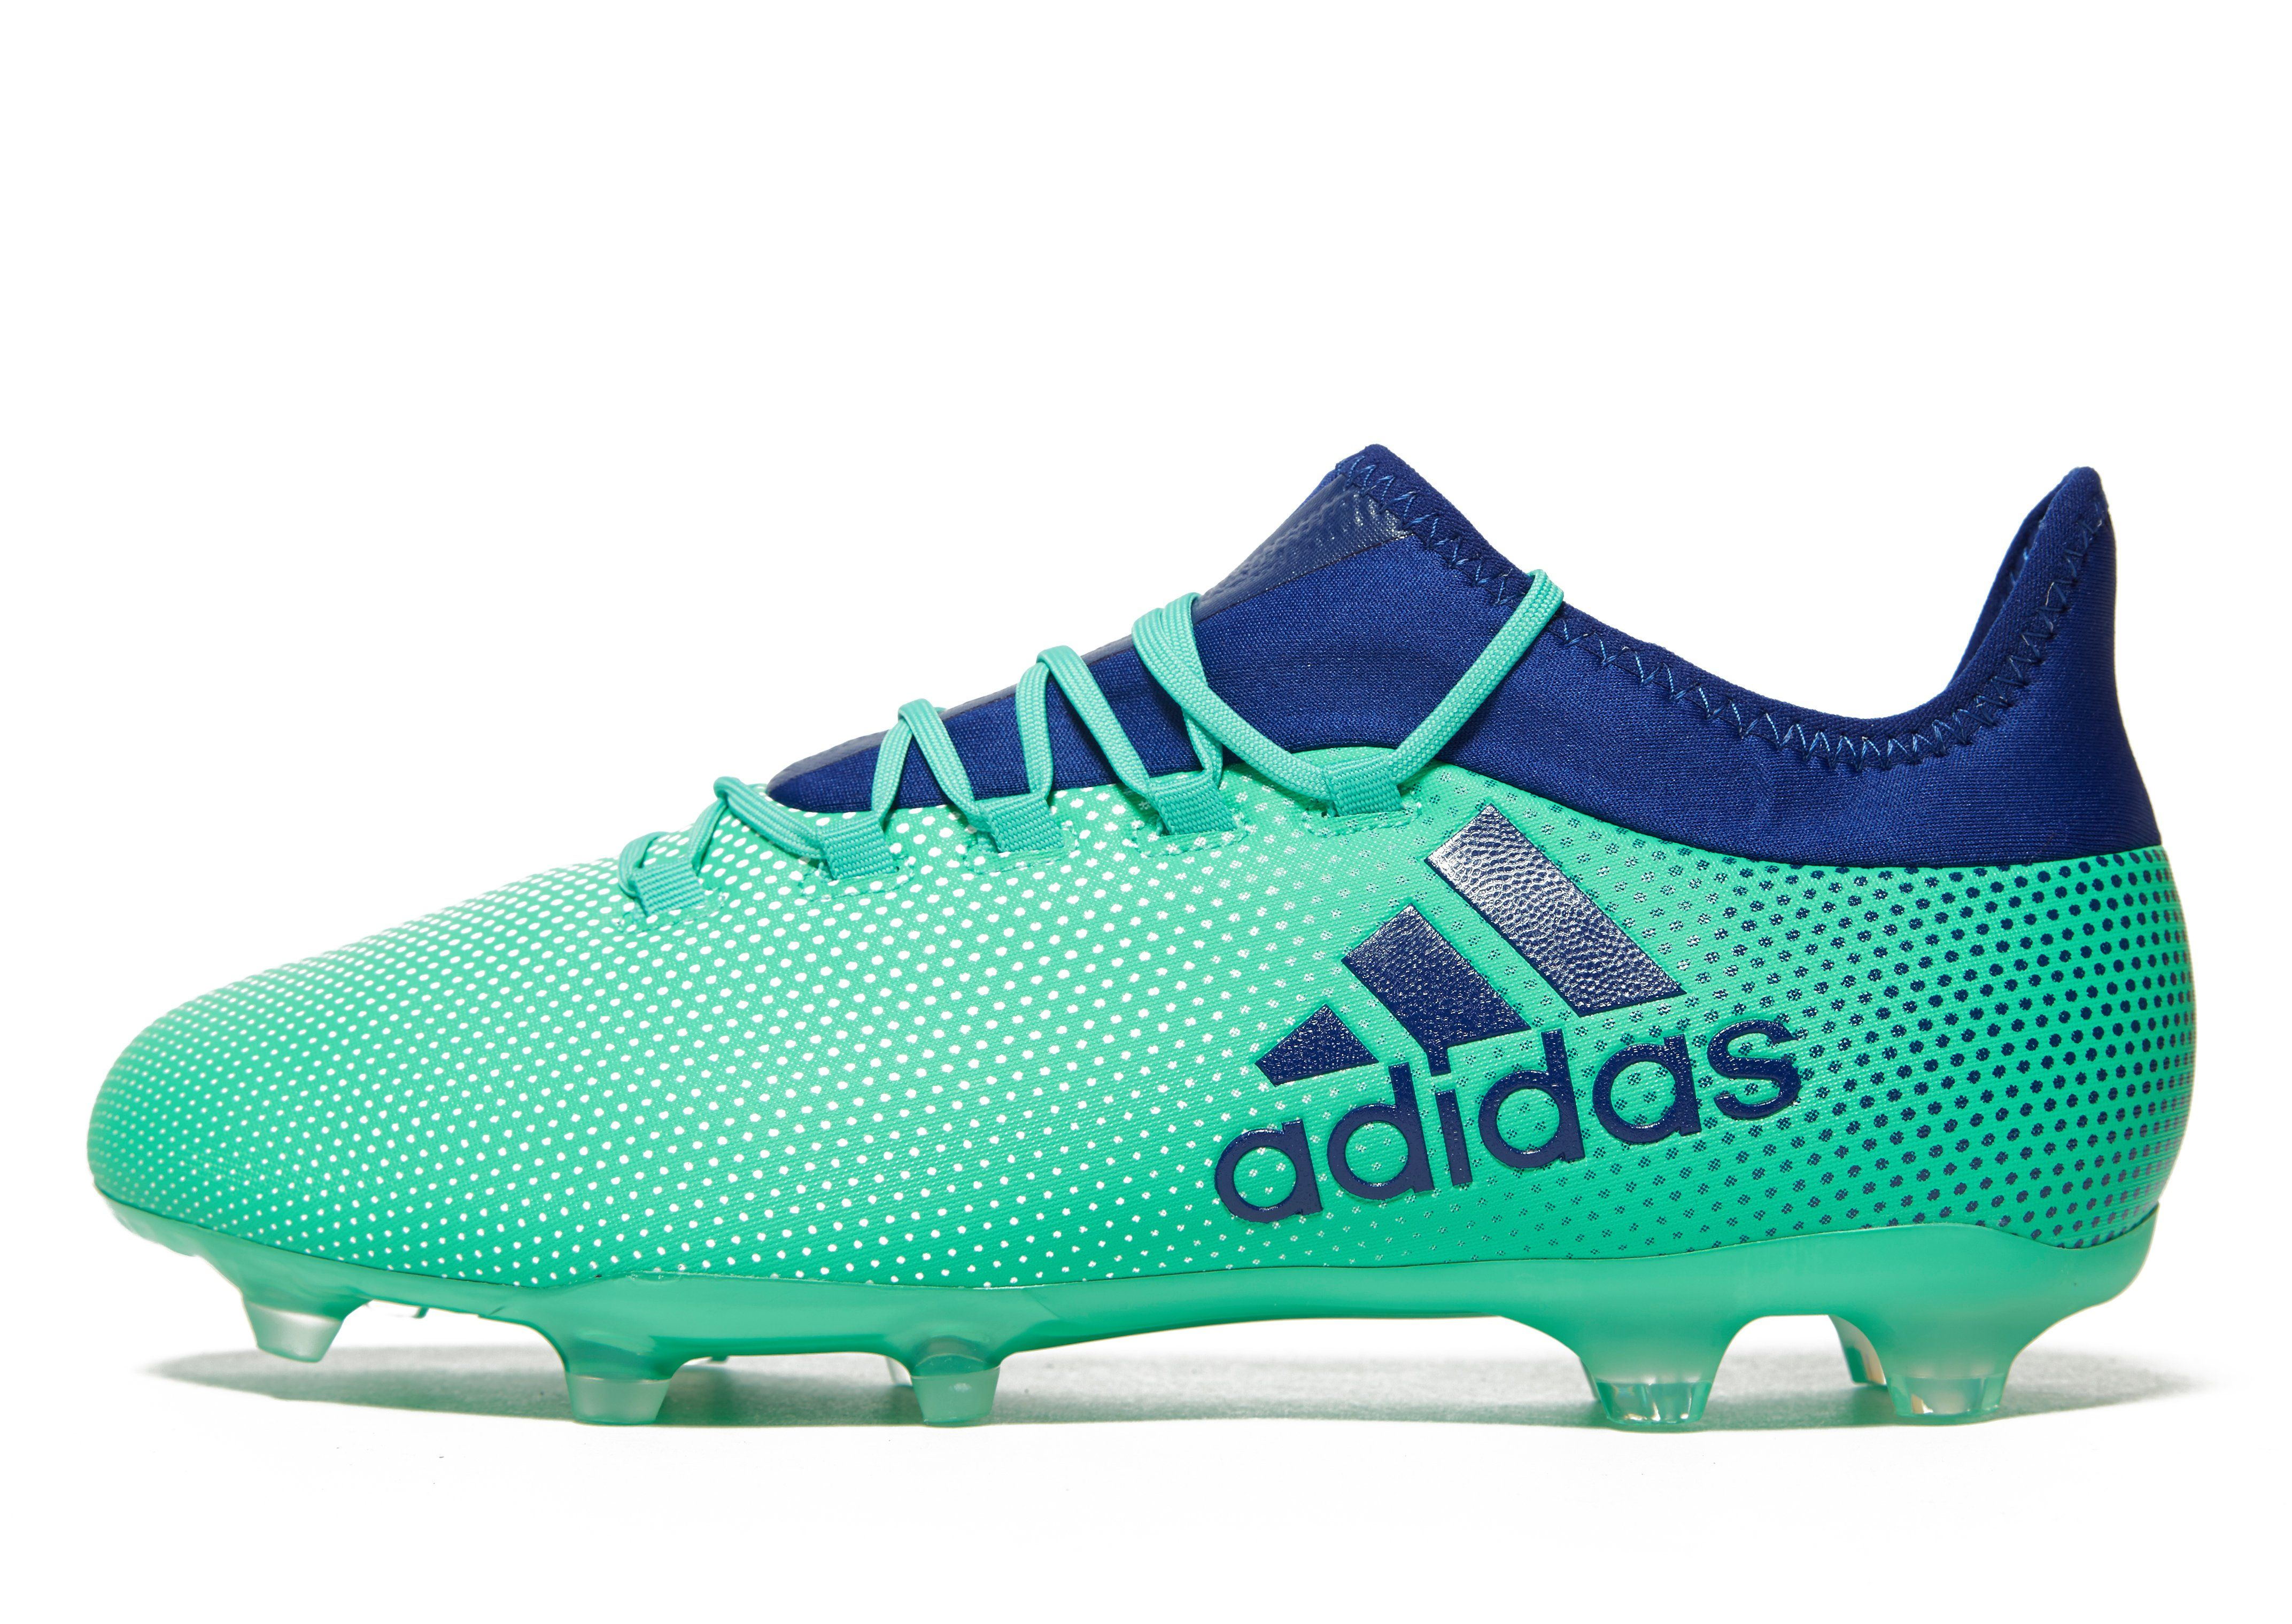 Adidas colpo mortale x fg jd sports